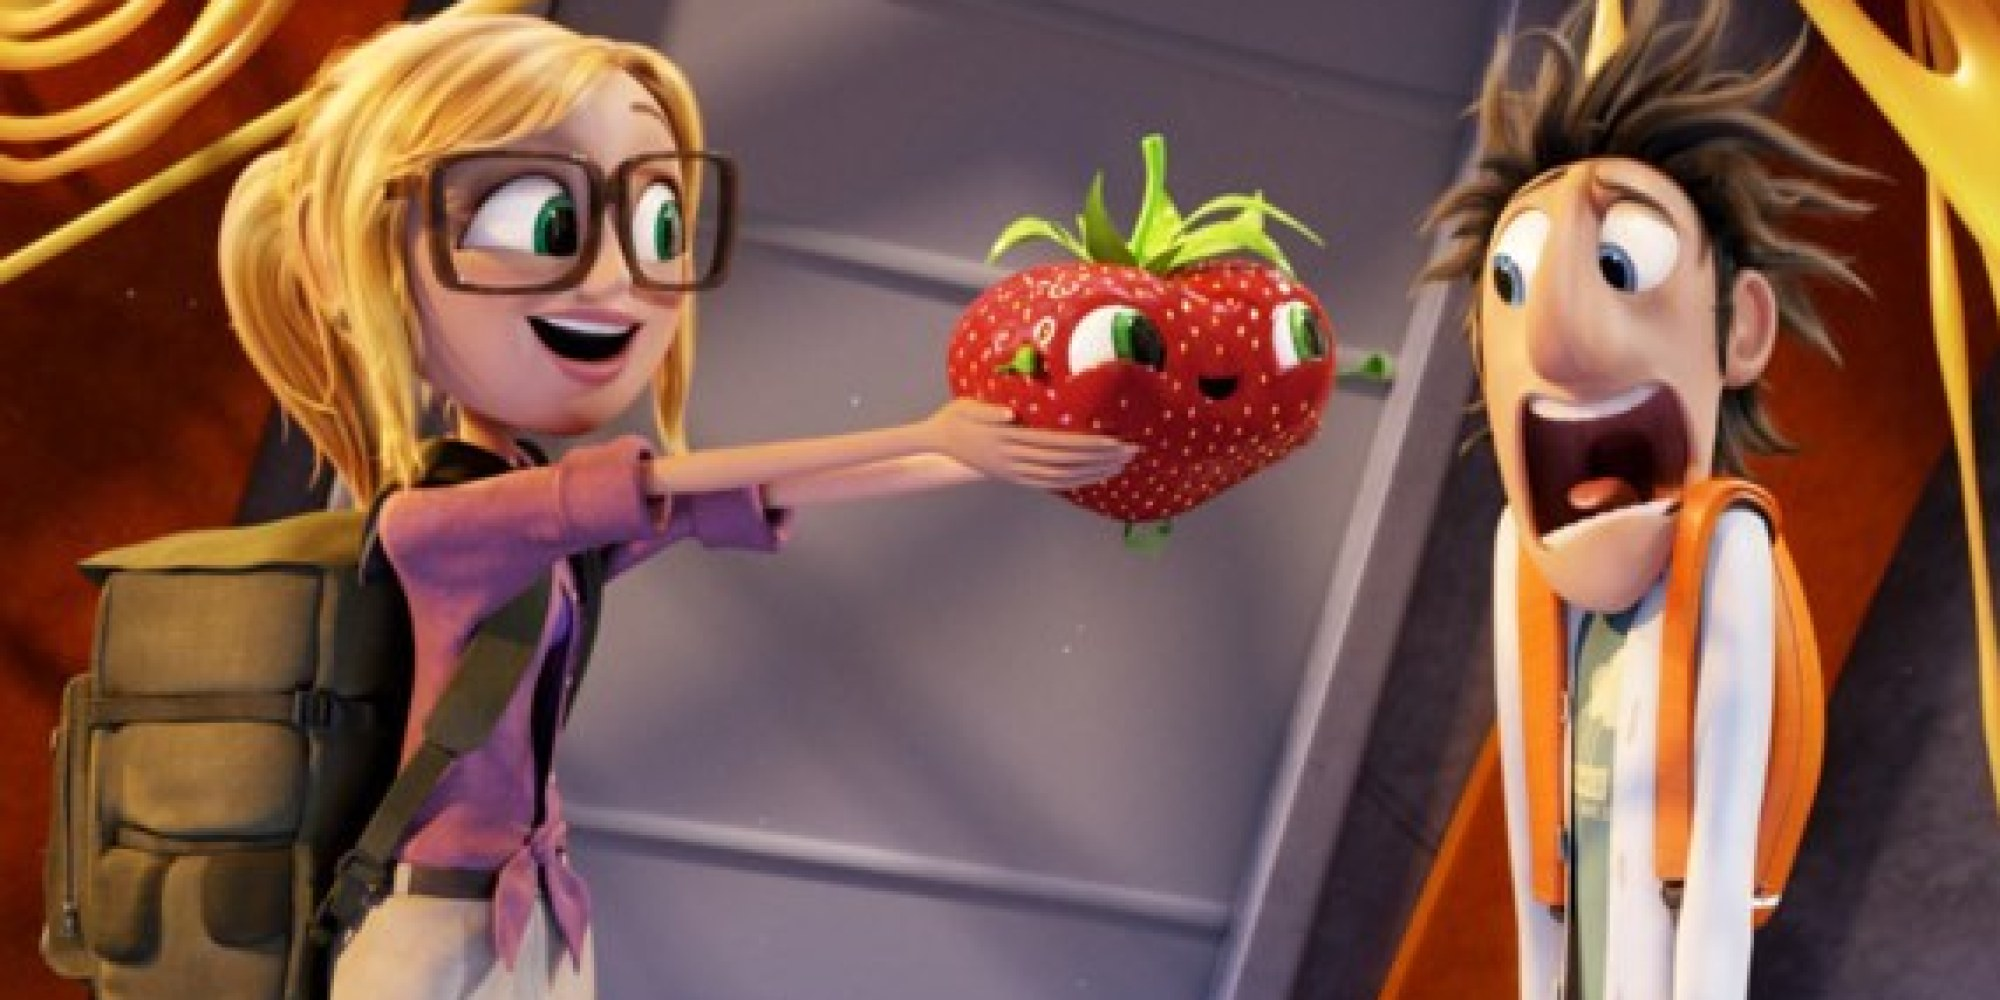 Cloudy With A Chance Of Meatballs 2\': Just How Many Food Puns Are ...